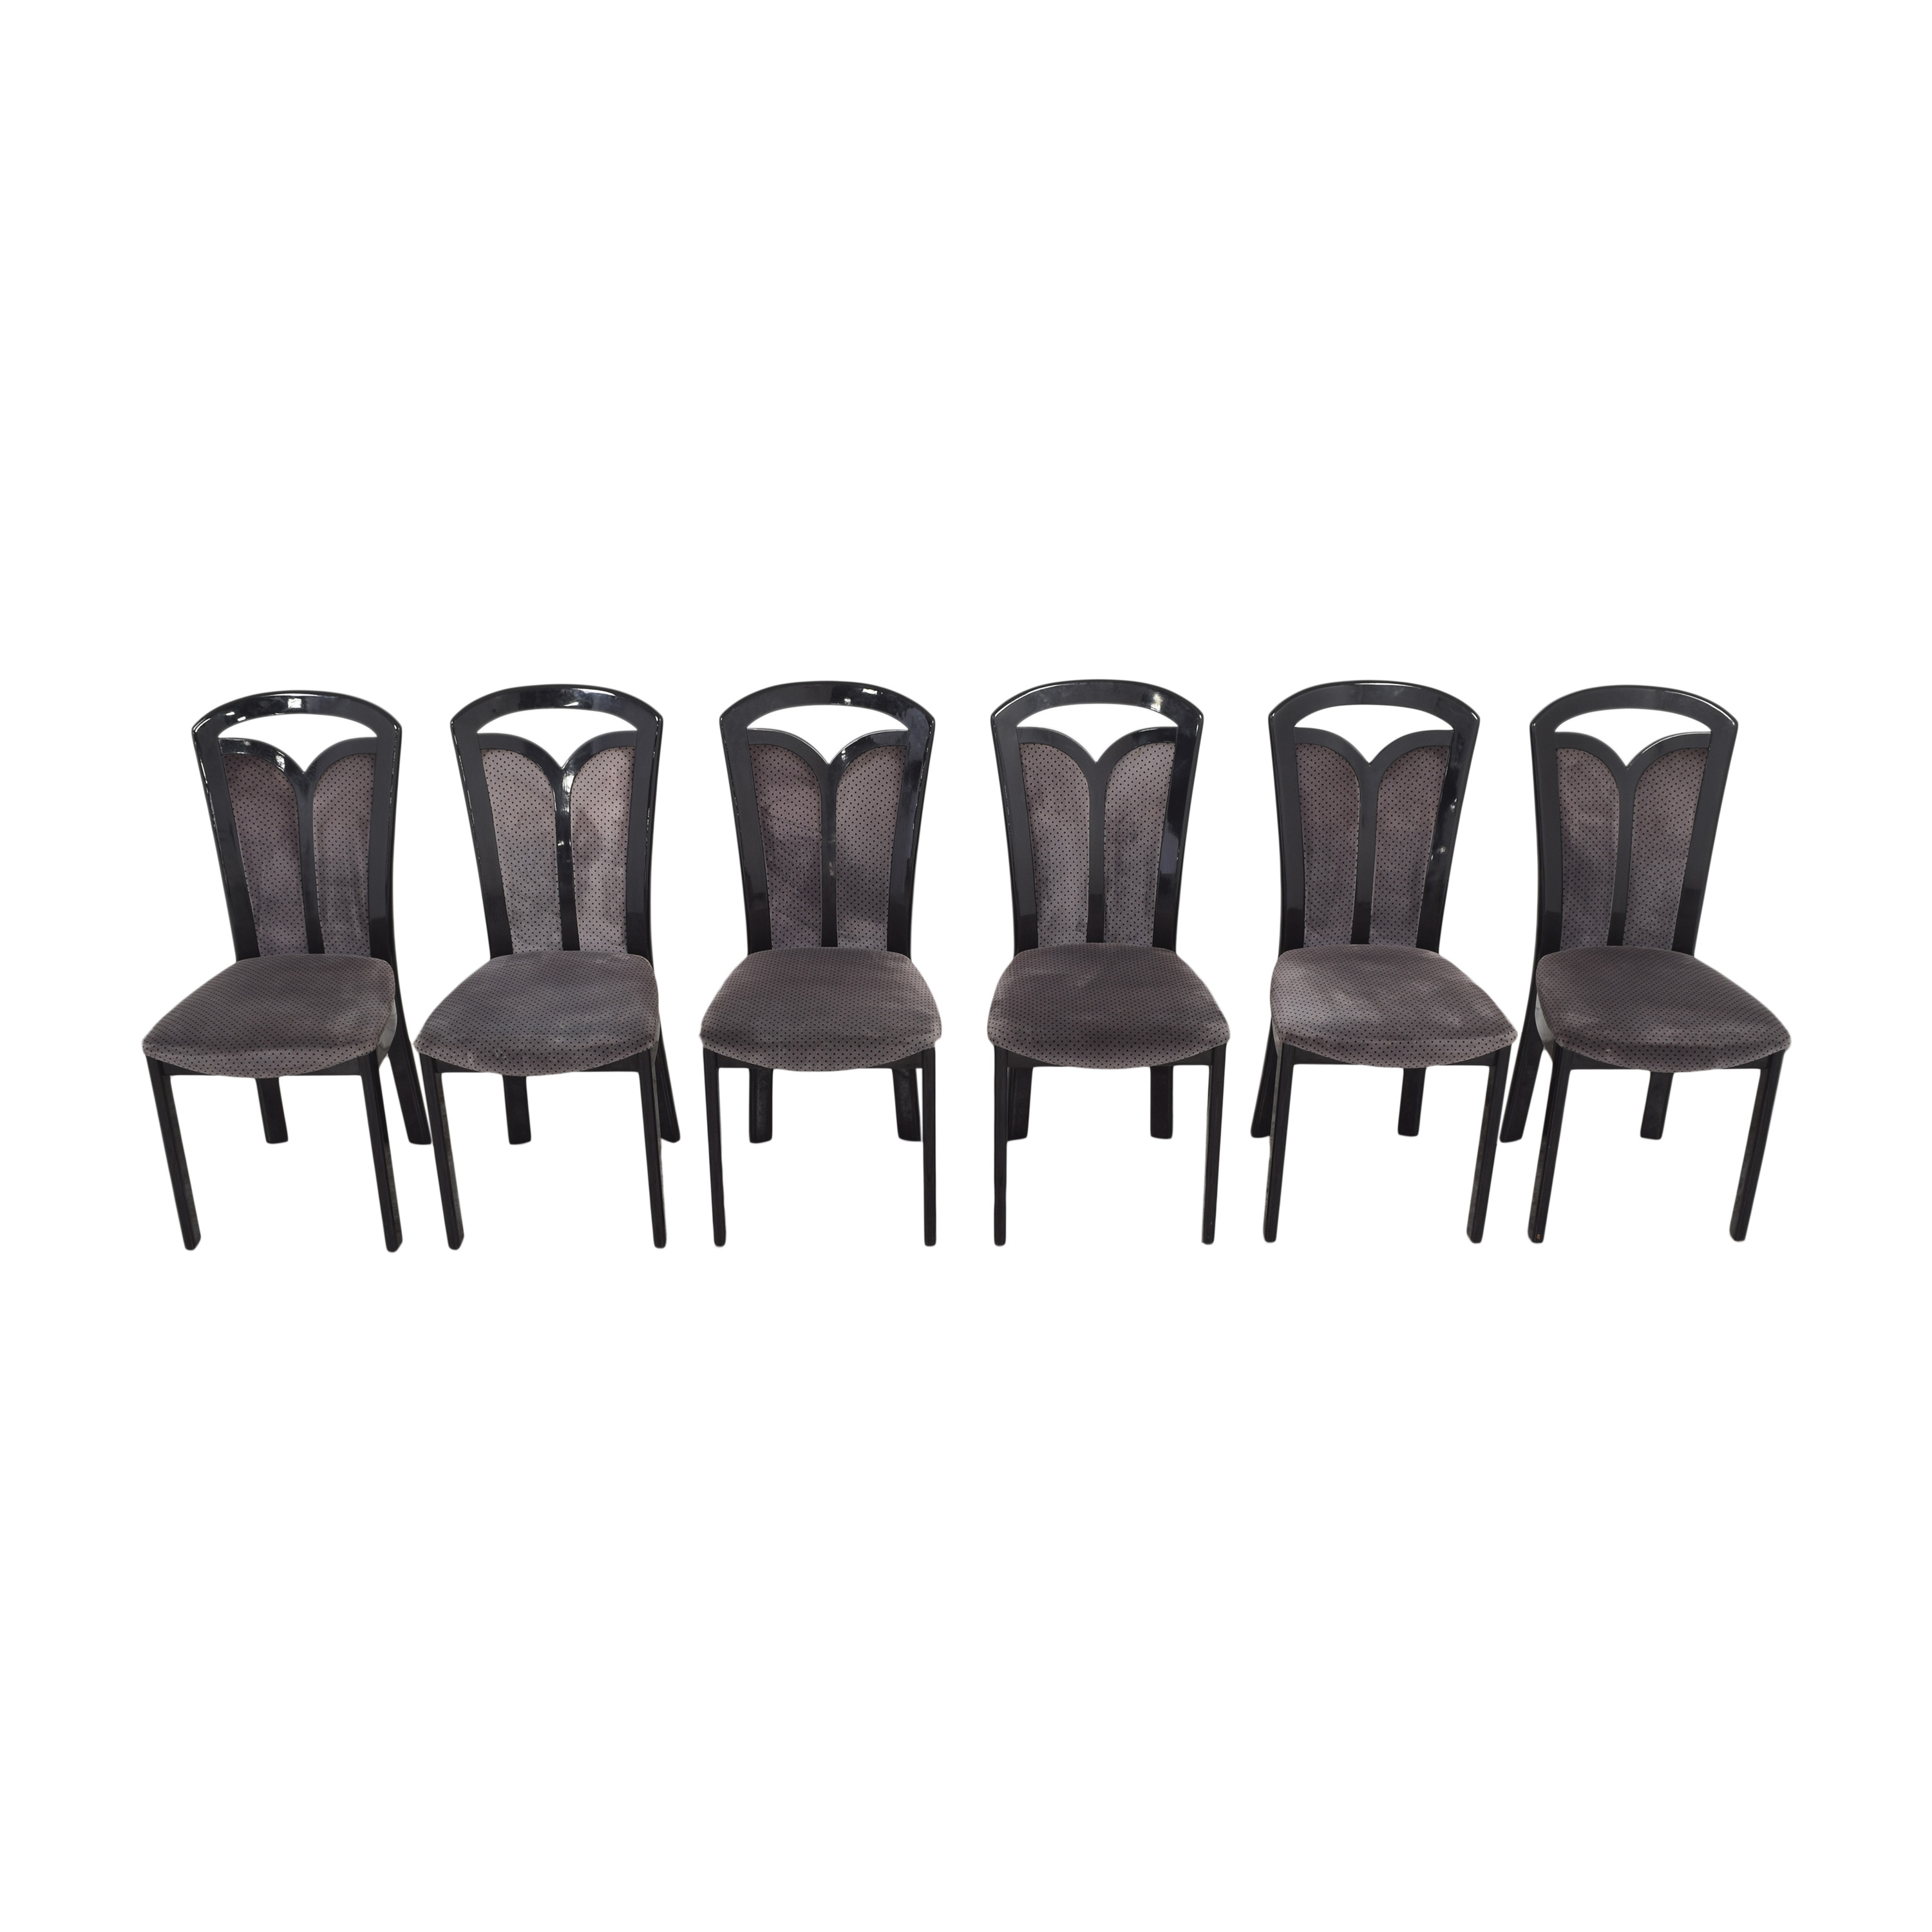 Maurice Villency Maurice Villency High Back Dining Chairs nyc